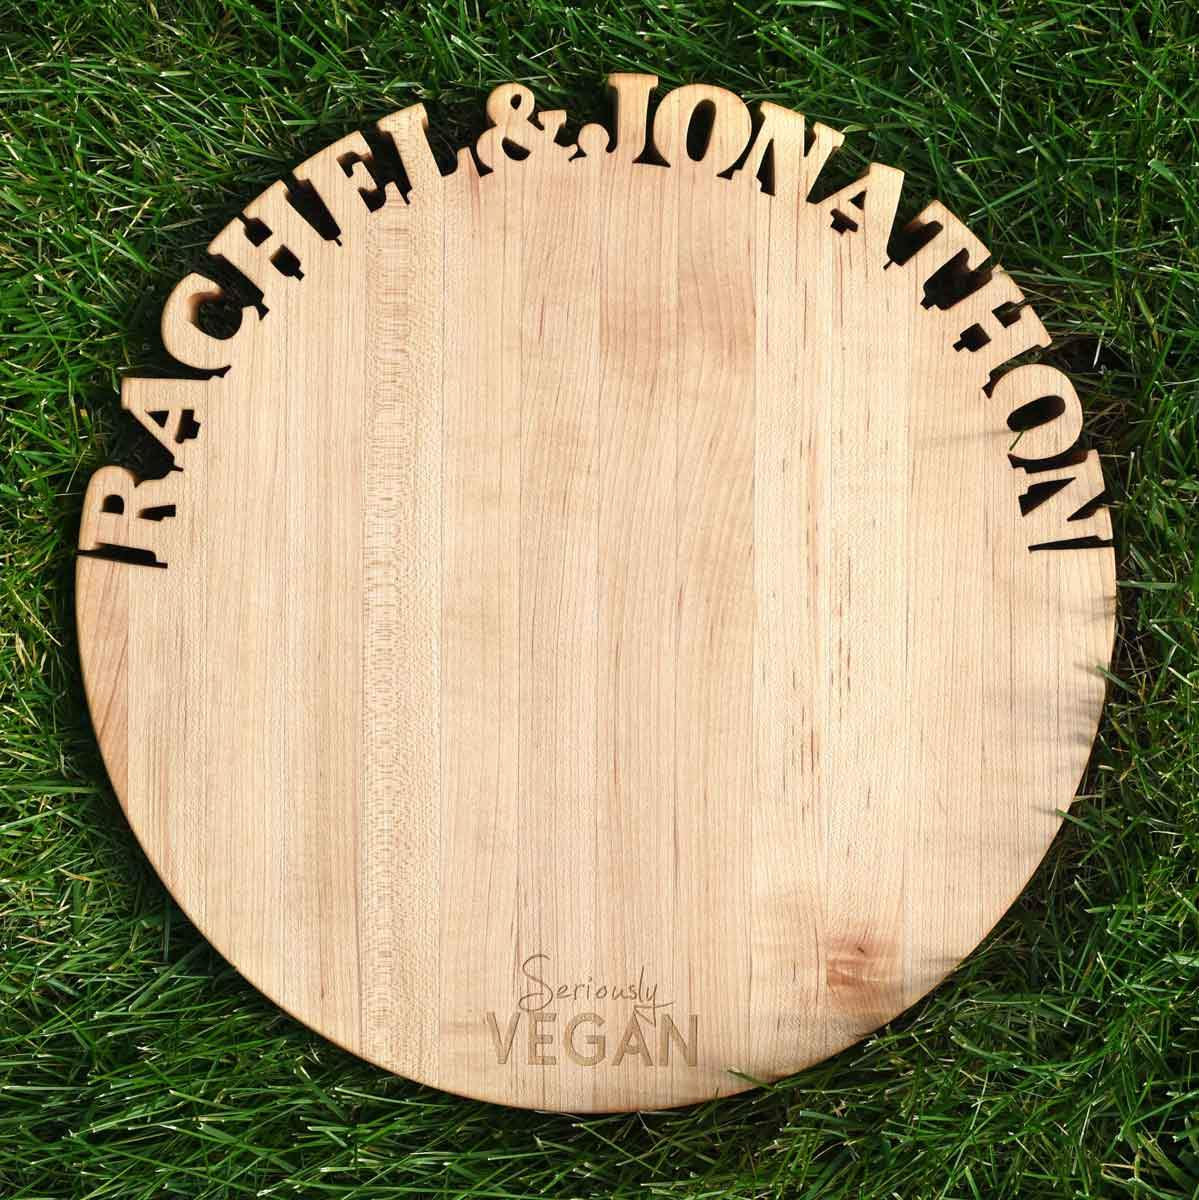 Create Your Own SERIOUSLY Vegan Cutting Board ~ Round Cutting Board